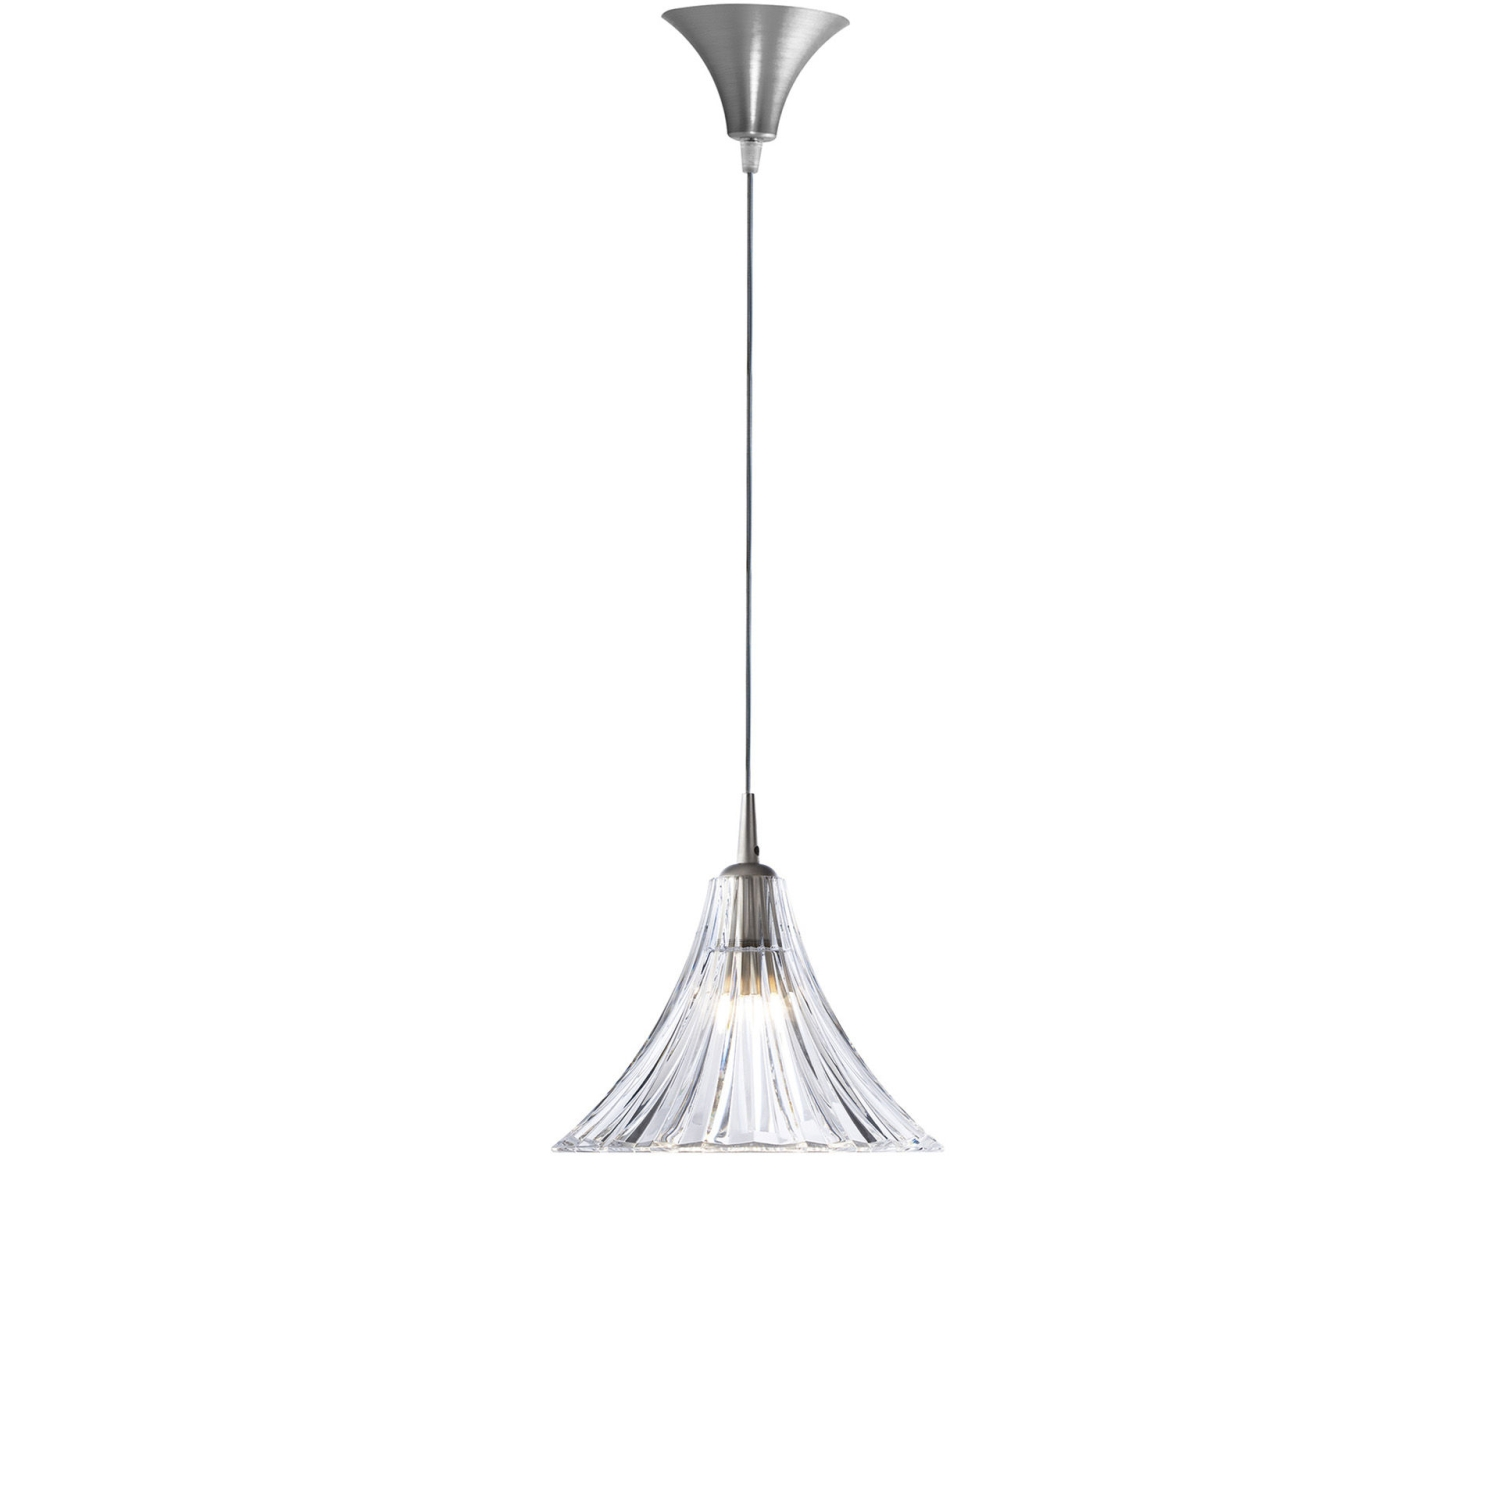 ceiling lamp clear Baccarat mille nuits 2608952